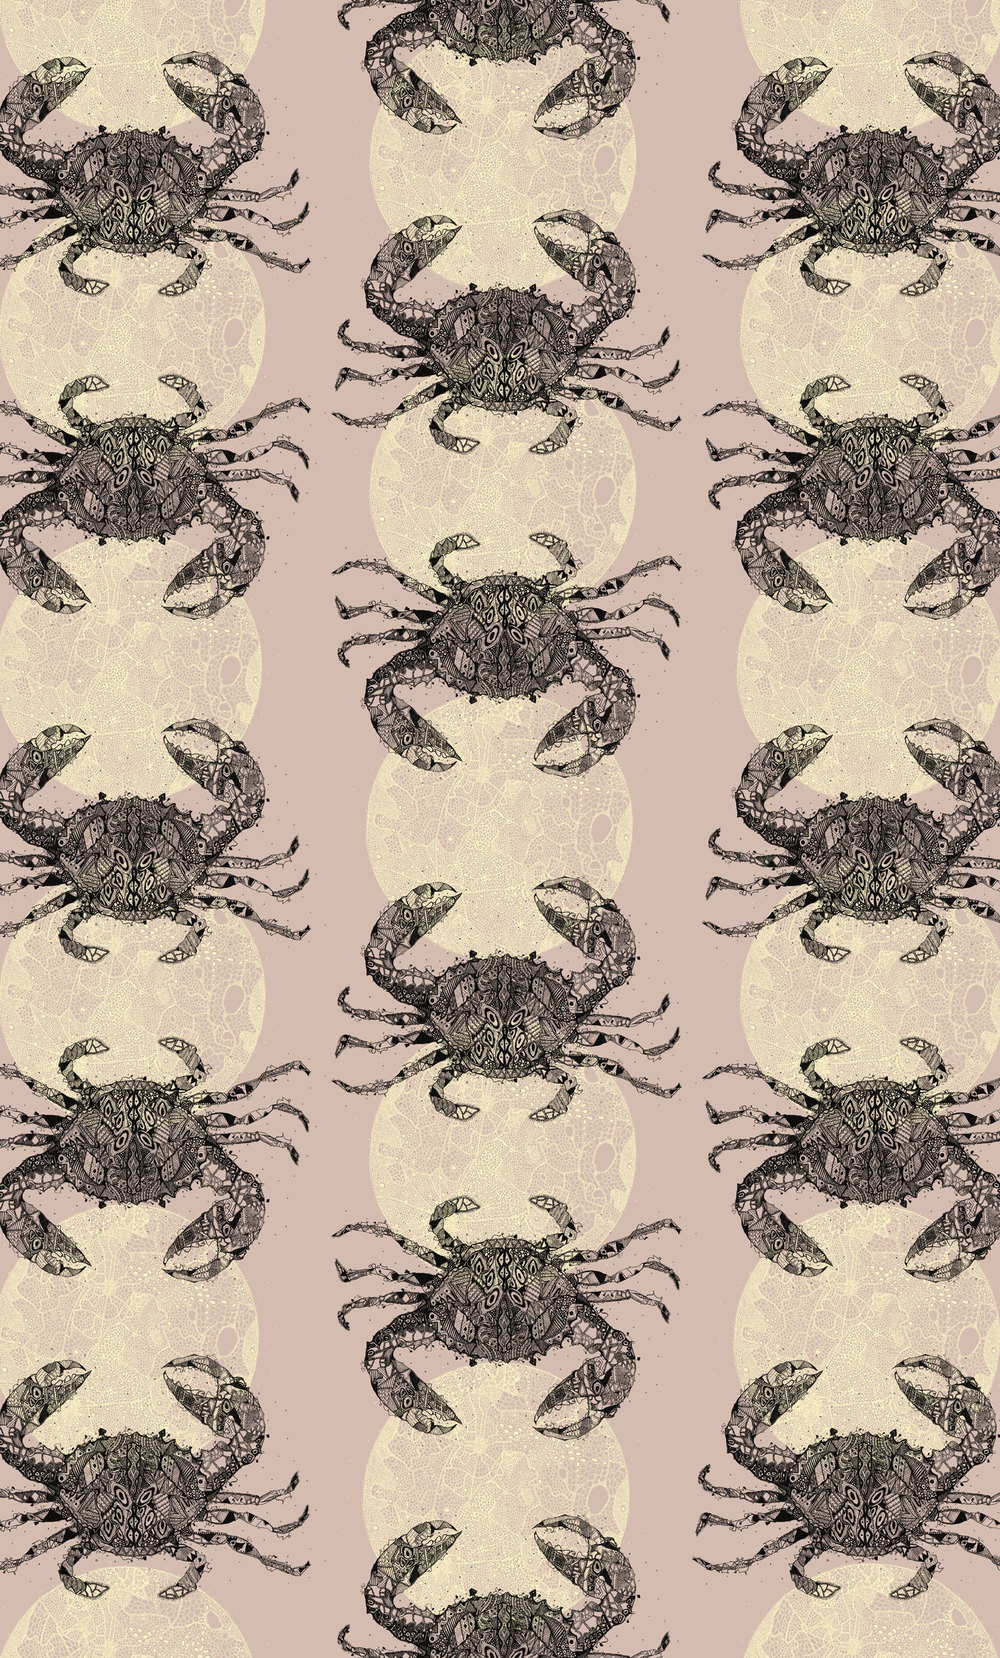 crab_wallpaper_roseyellowblack.jpg